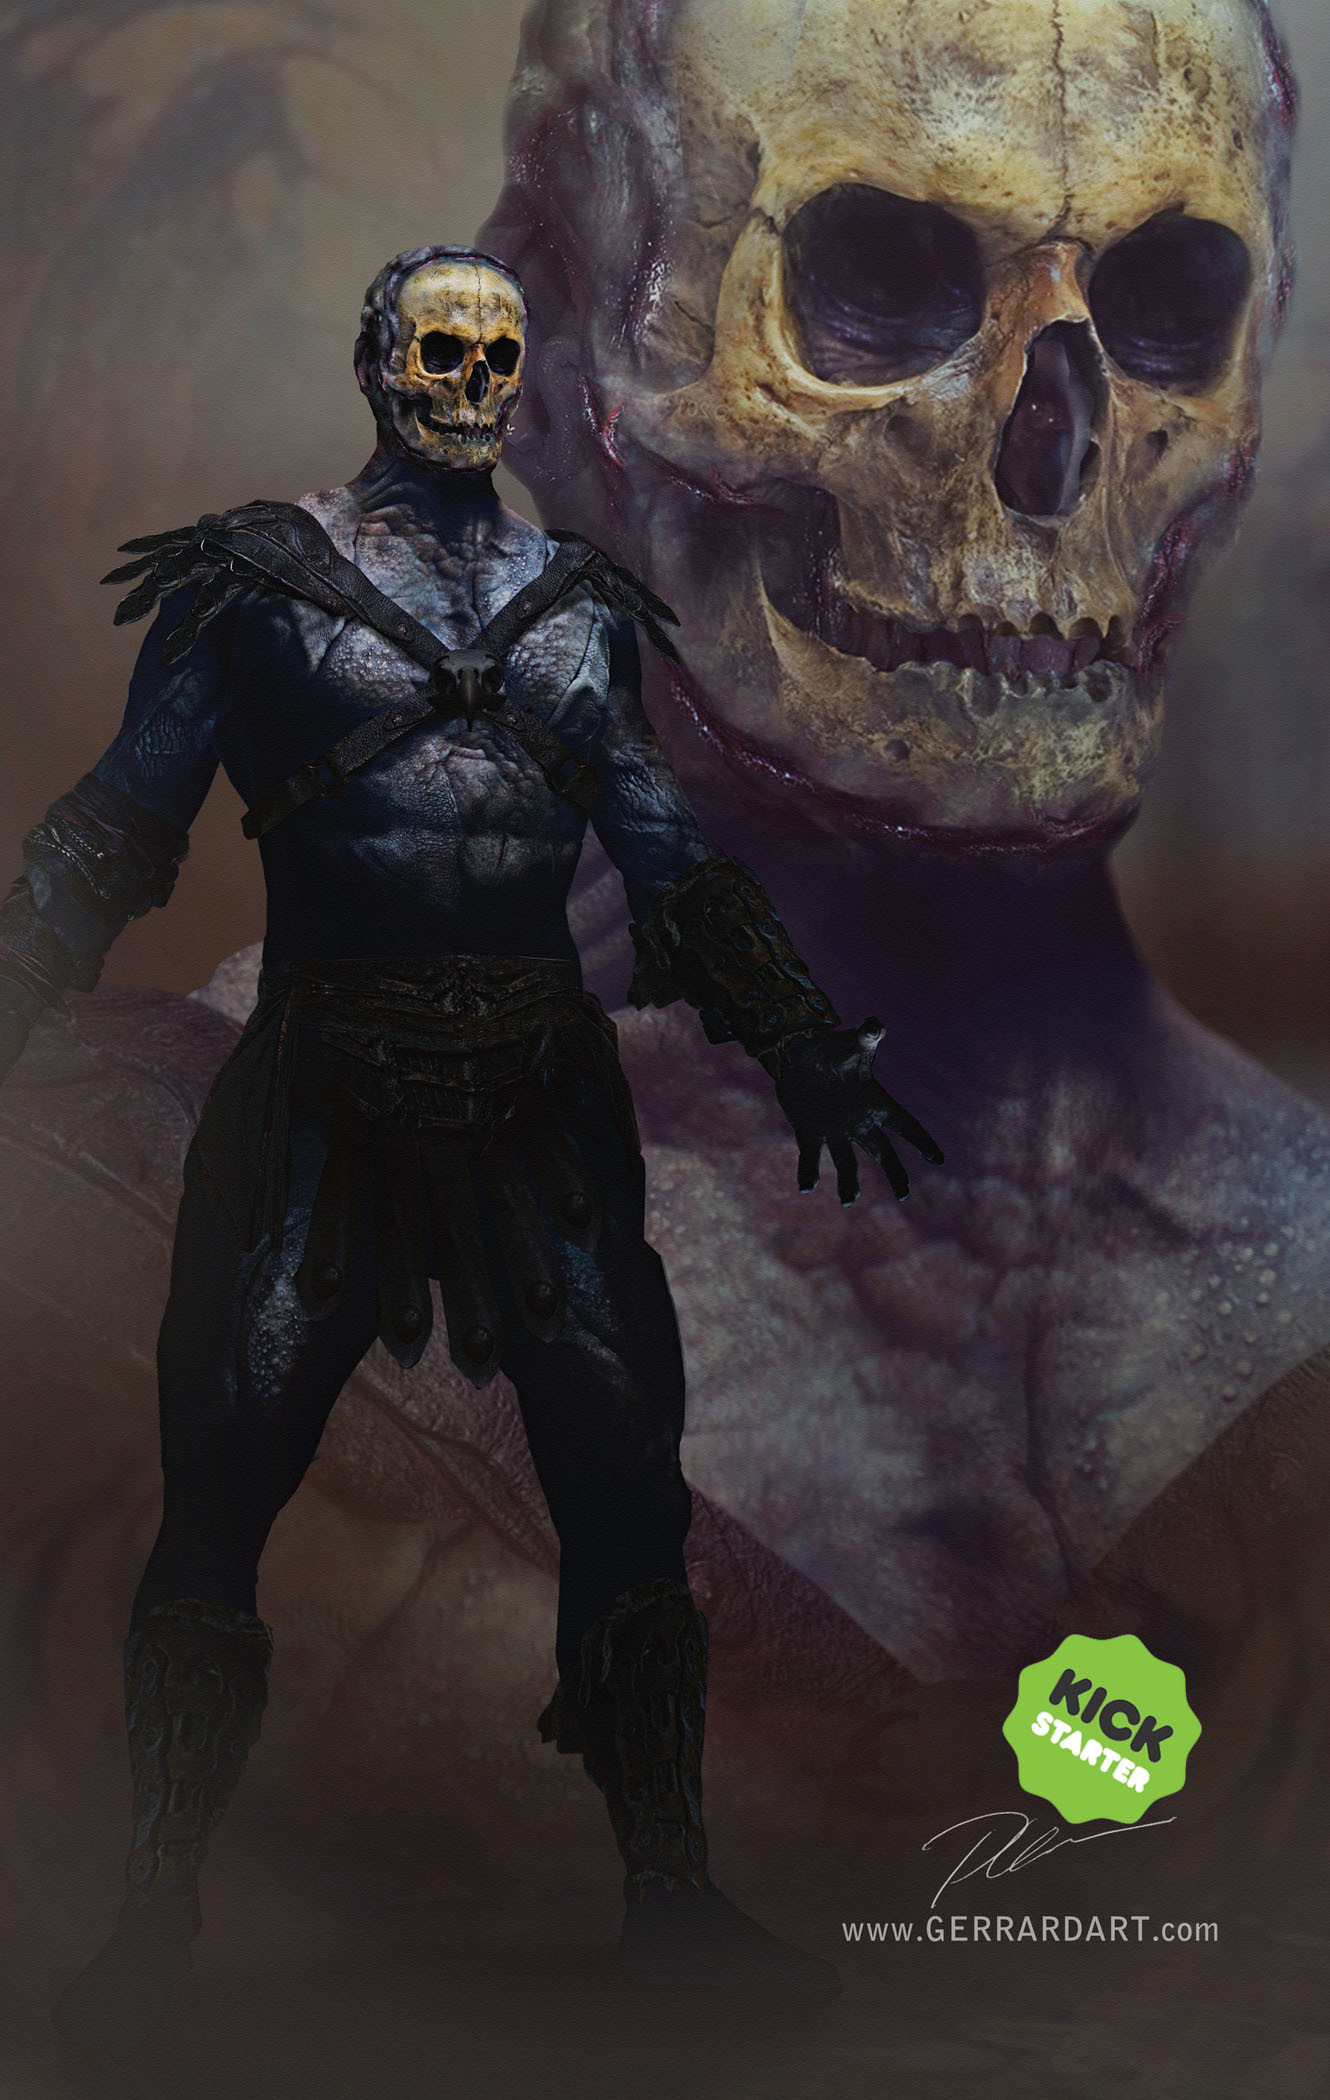 Paul gerrard retroh skeletor 01